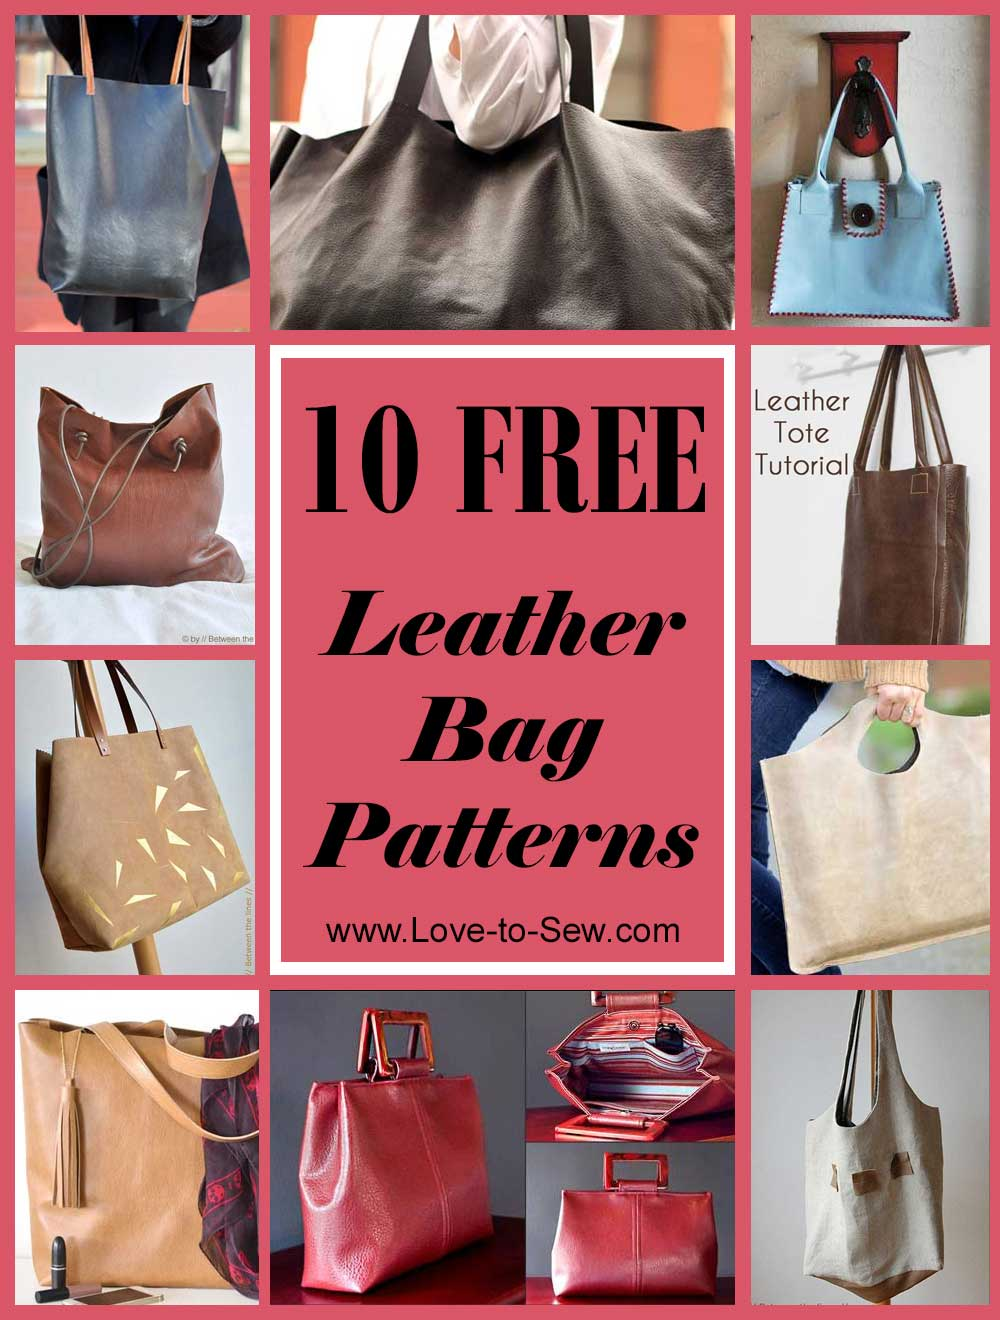 12 Free Leather Bag Patterns